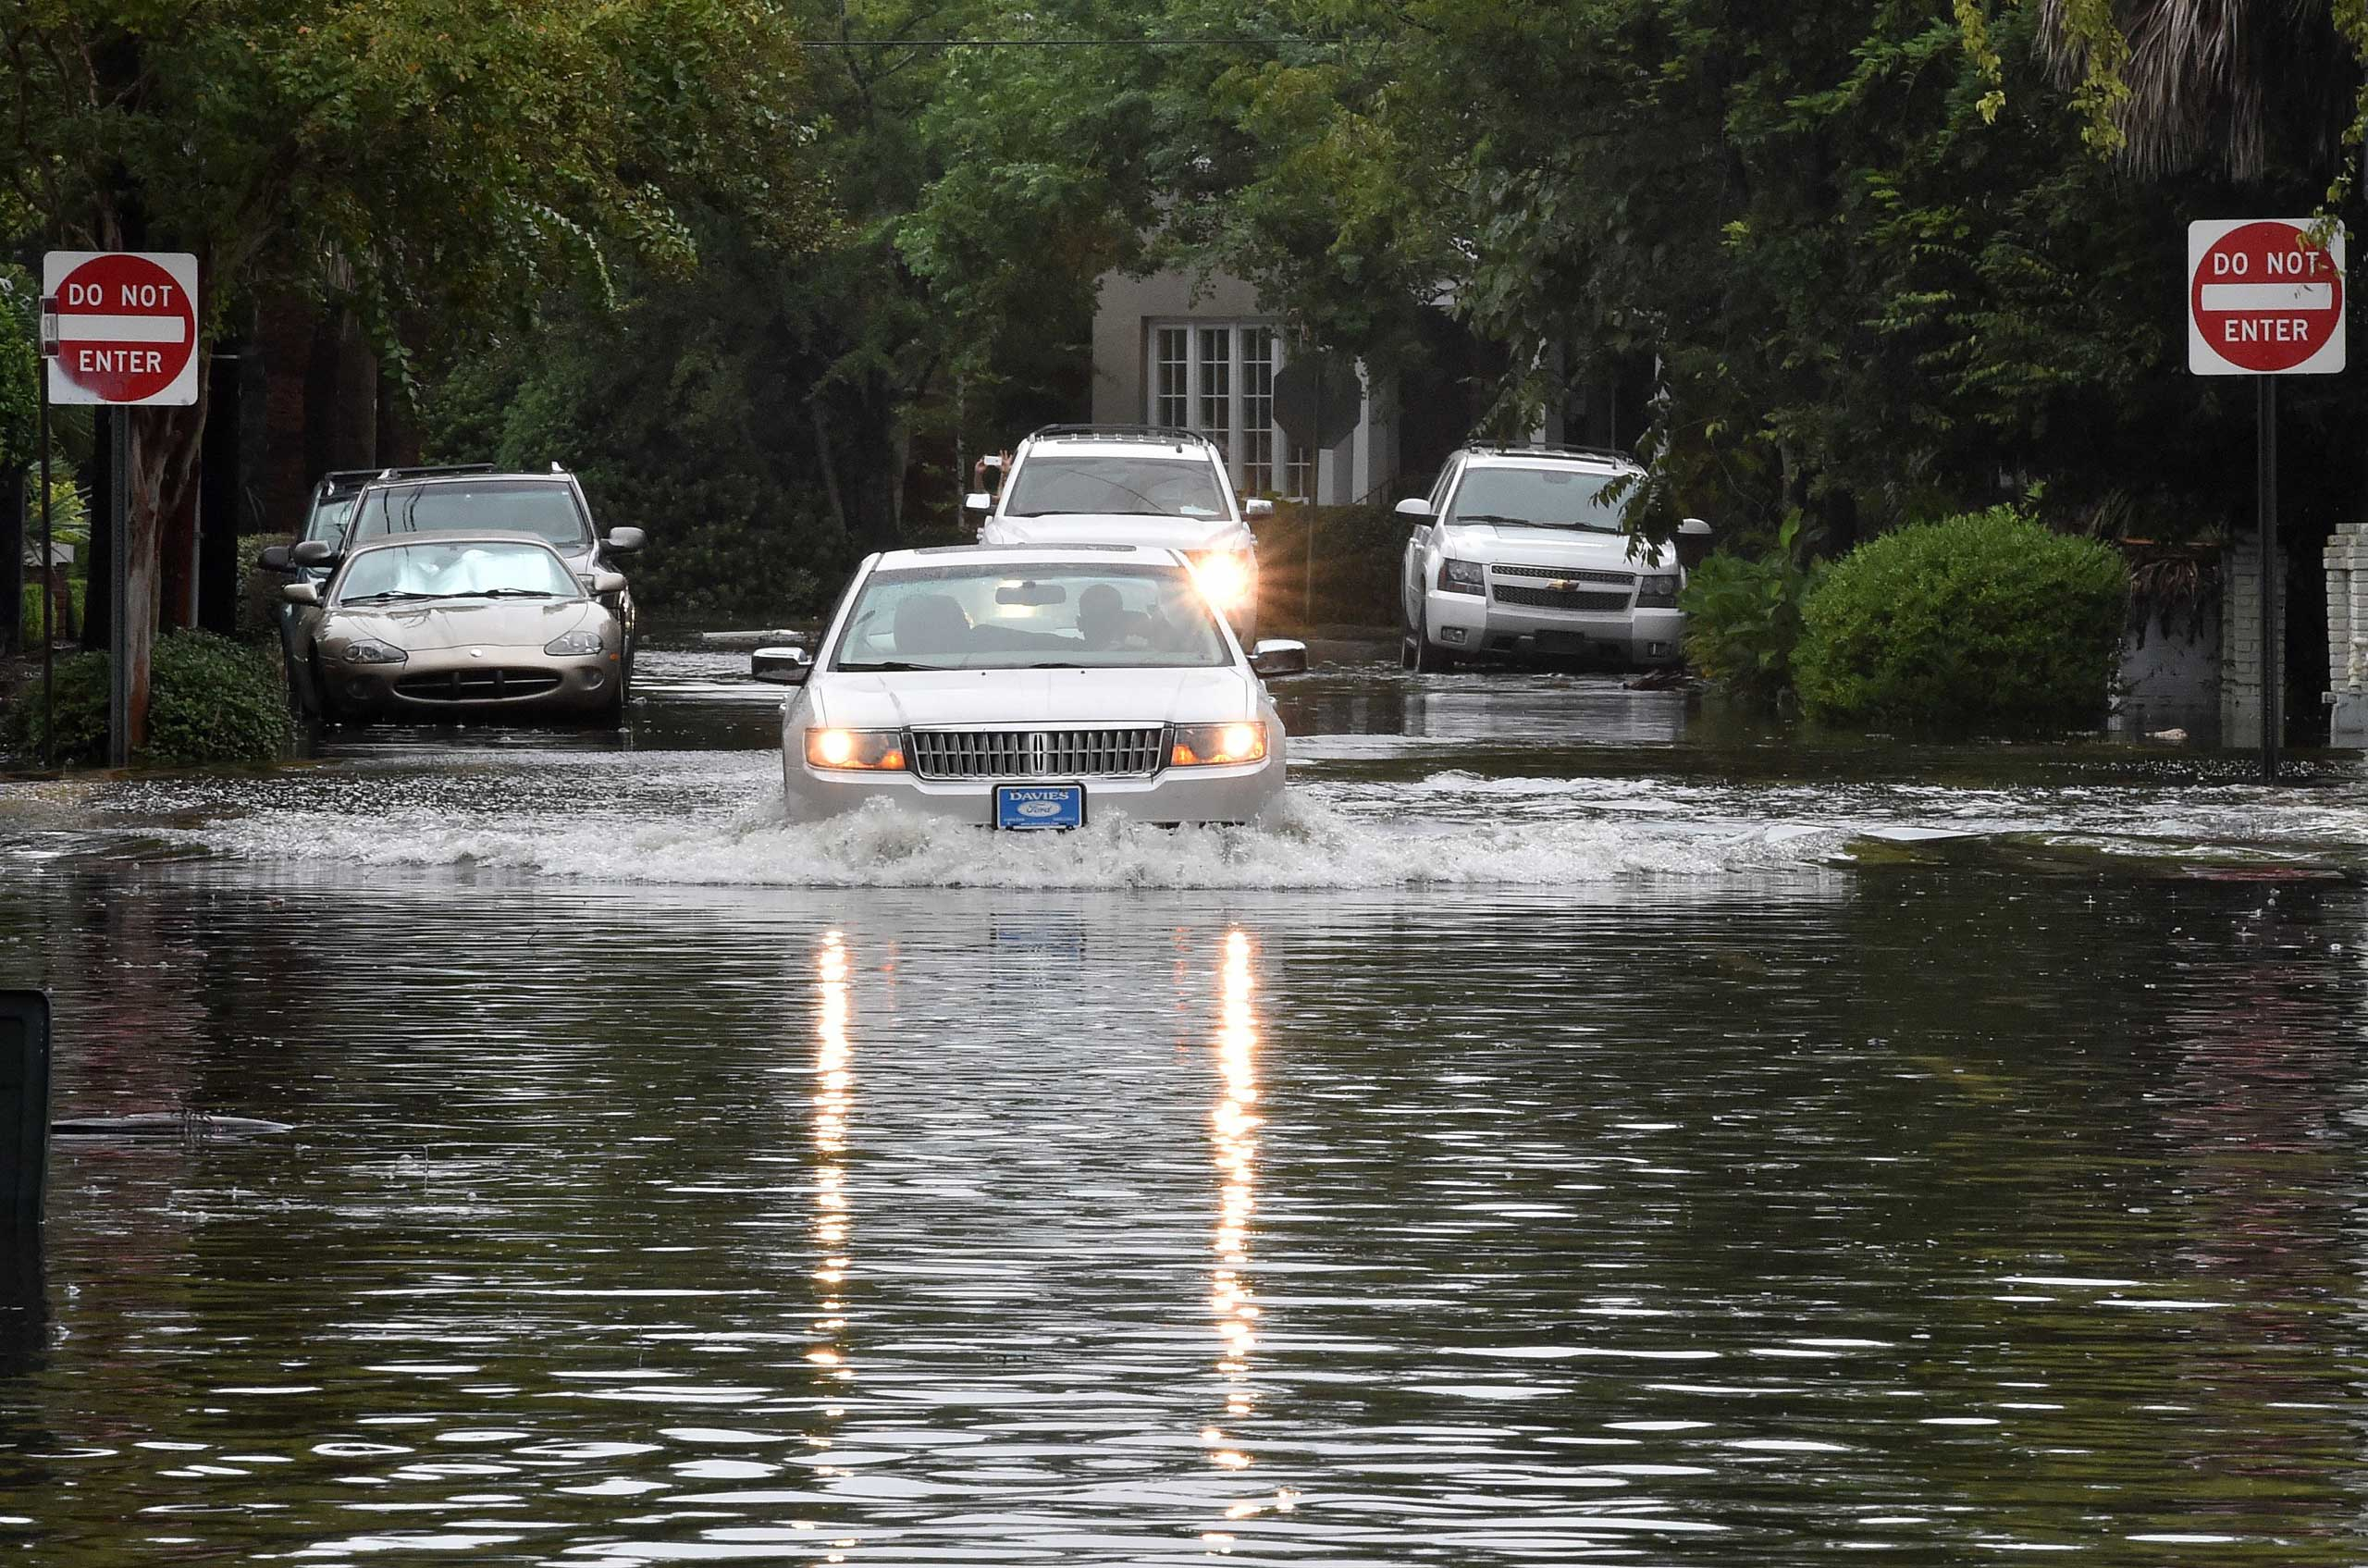 A car drives down a flooded street in Charleston, S.C., on Oct. 4, 2015.